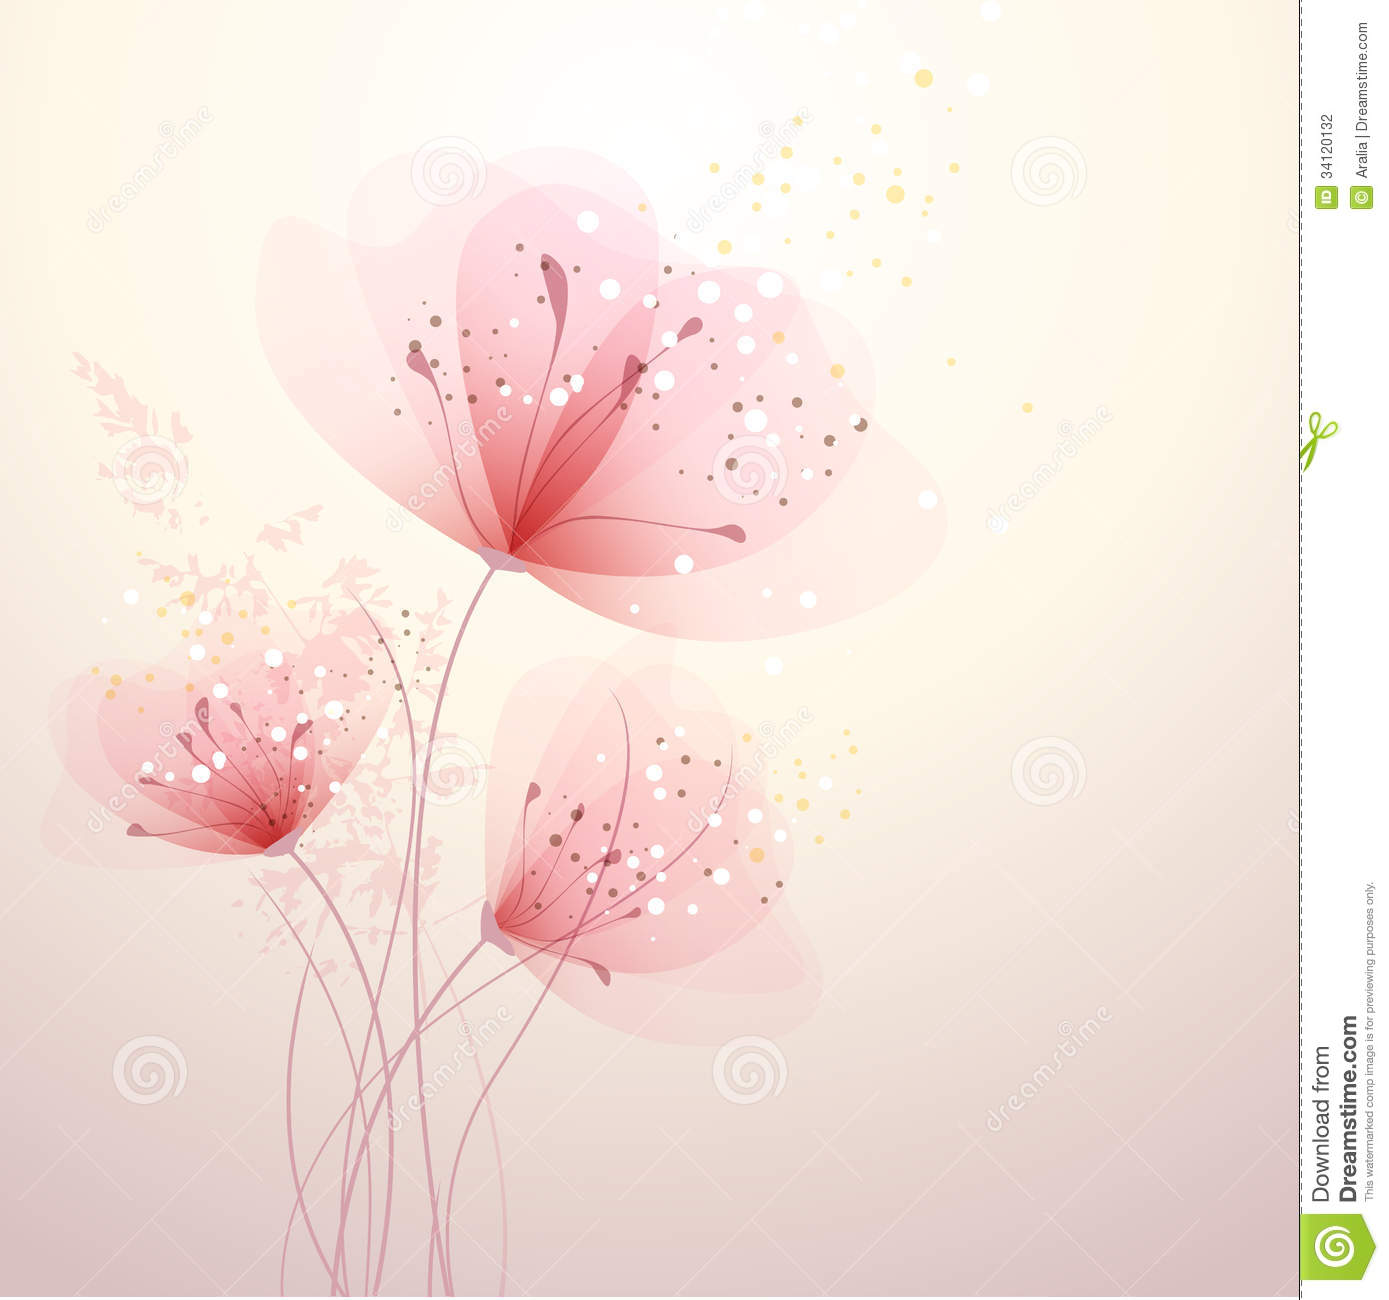 Background With Pastel Flowers Stock Photography - Image: 34120132